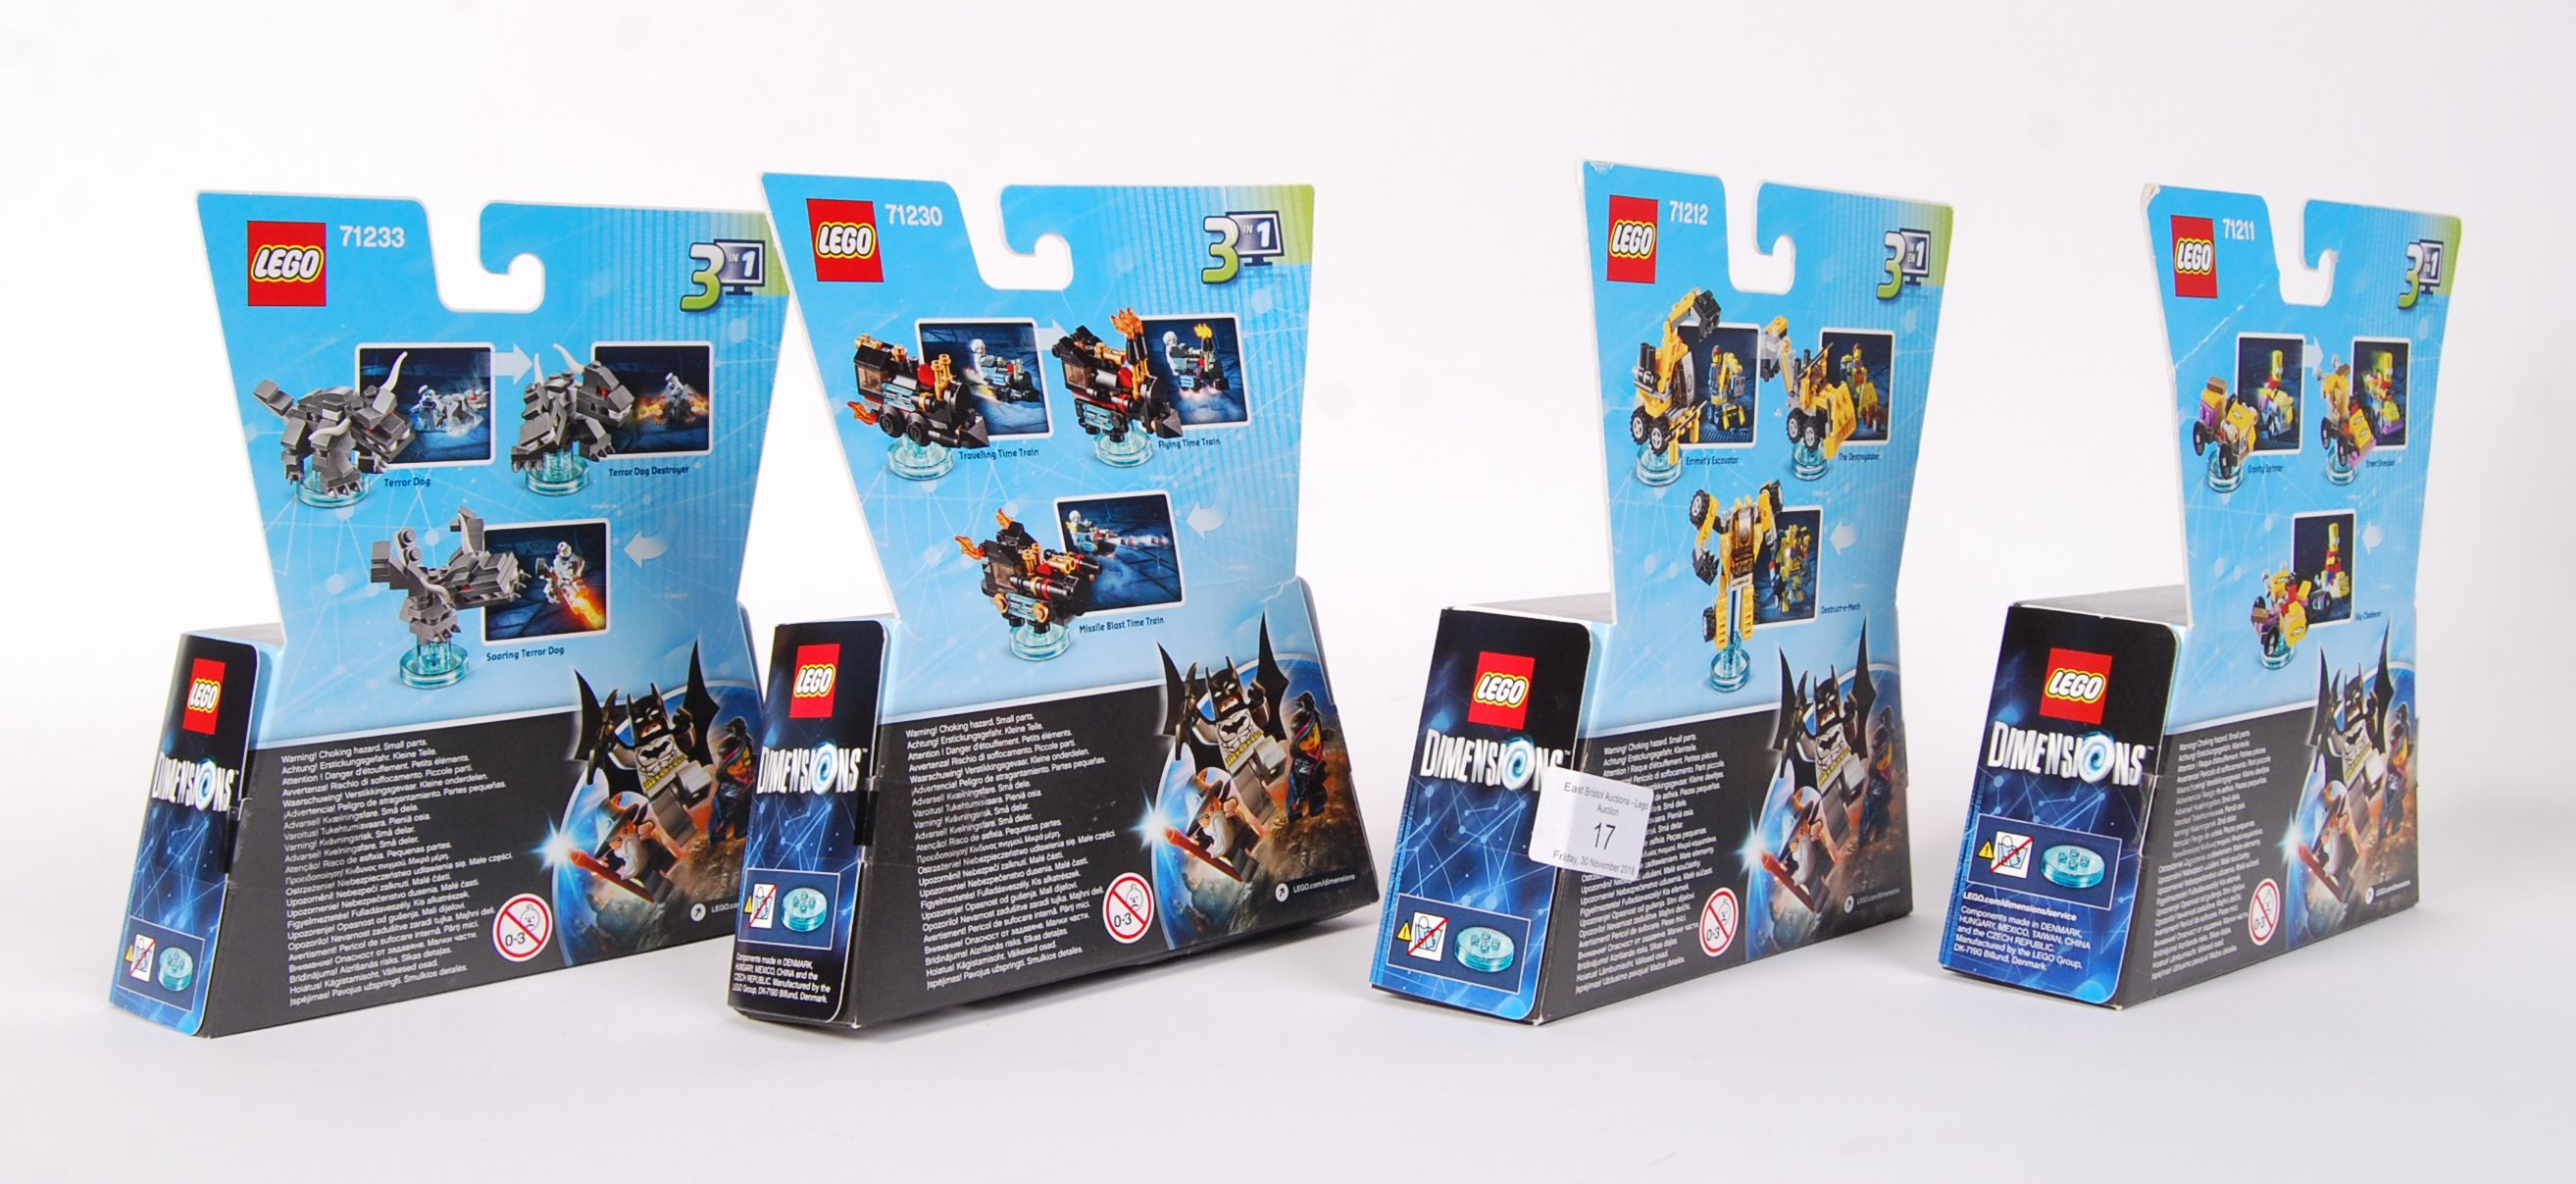 LEGO DIMENSION 71233 , 71230 , 71212 AND 71211 BOX - Image 2 of 2